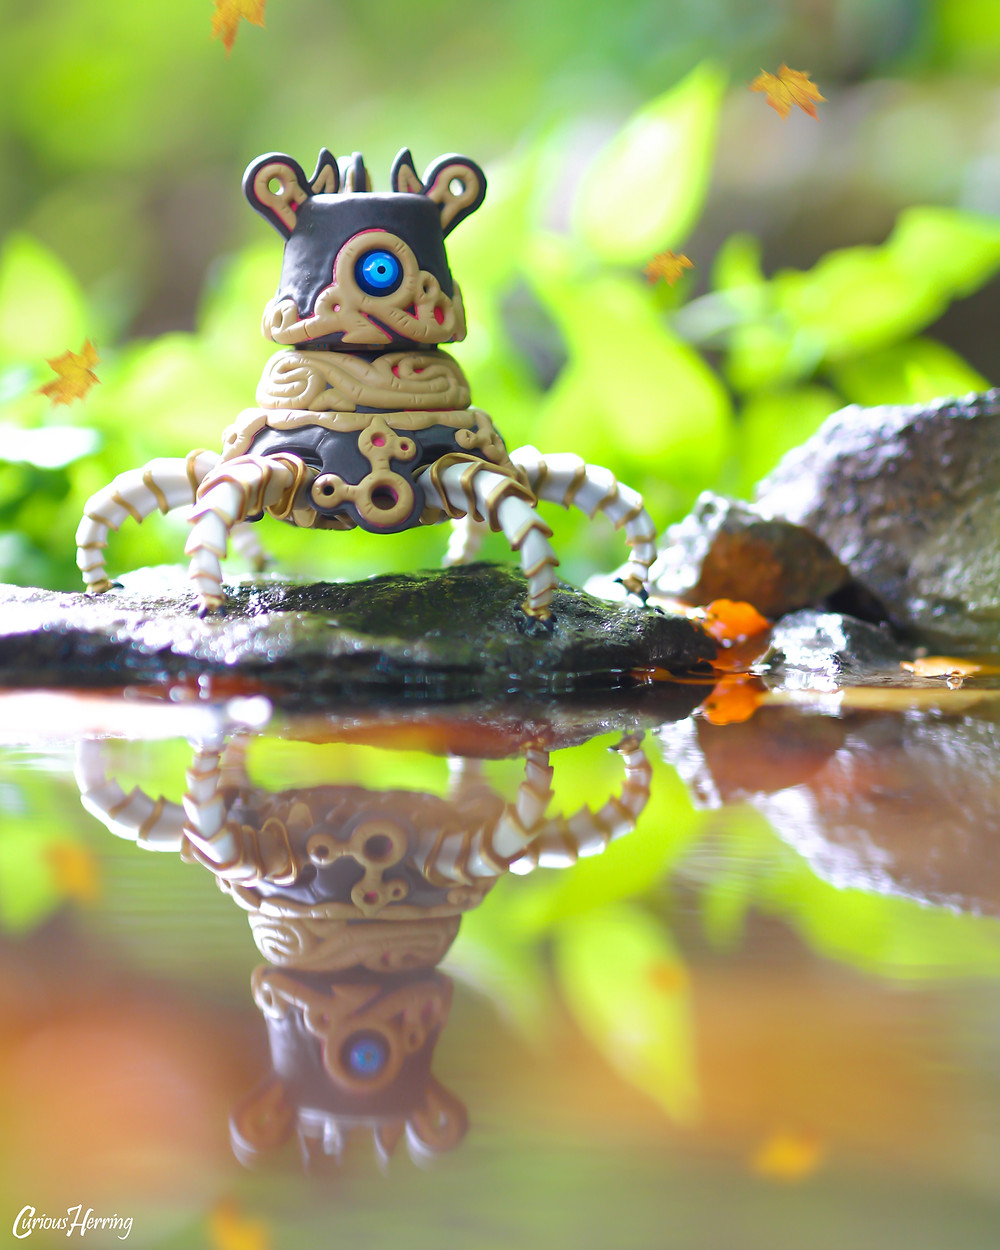 Nintendo Nendoroid Photography of Guardian from the legend of Zelda Breath of The Wild, sat watching the world of hyrule go by next to the calming water. Toy and nendoroid photography by CuriousHerring (Curious Herring Photography)